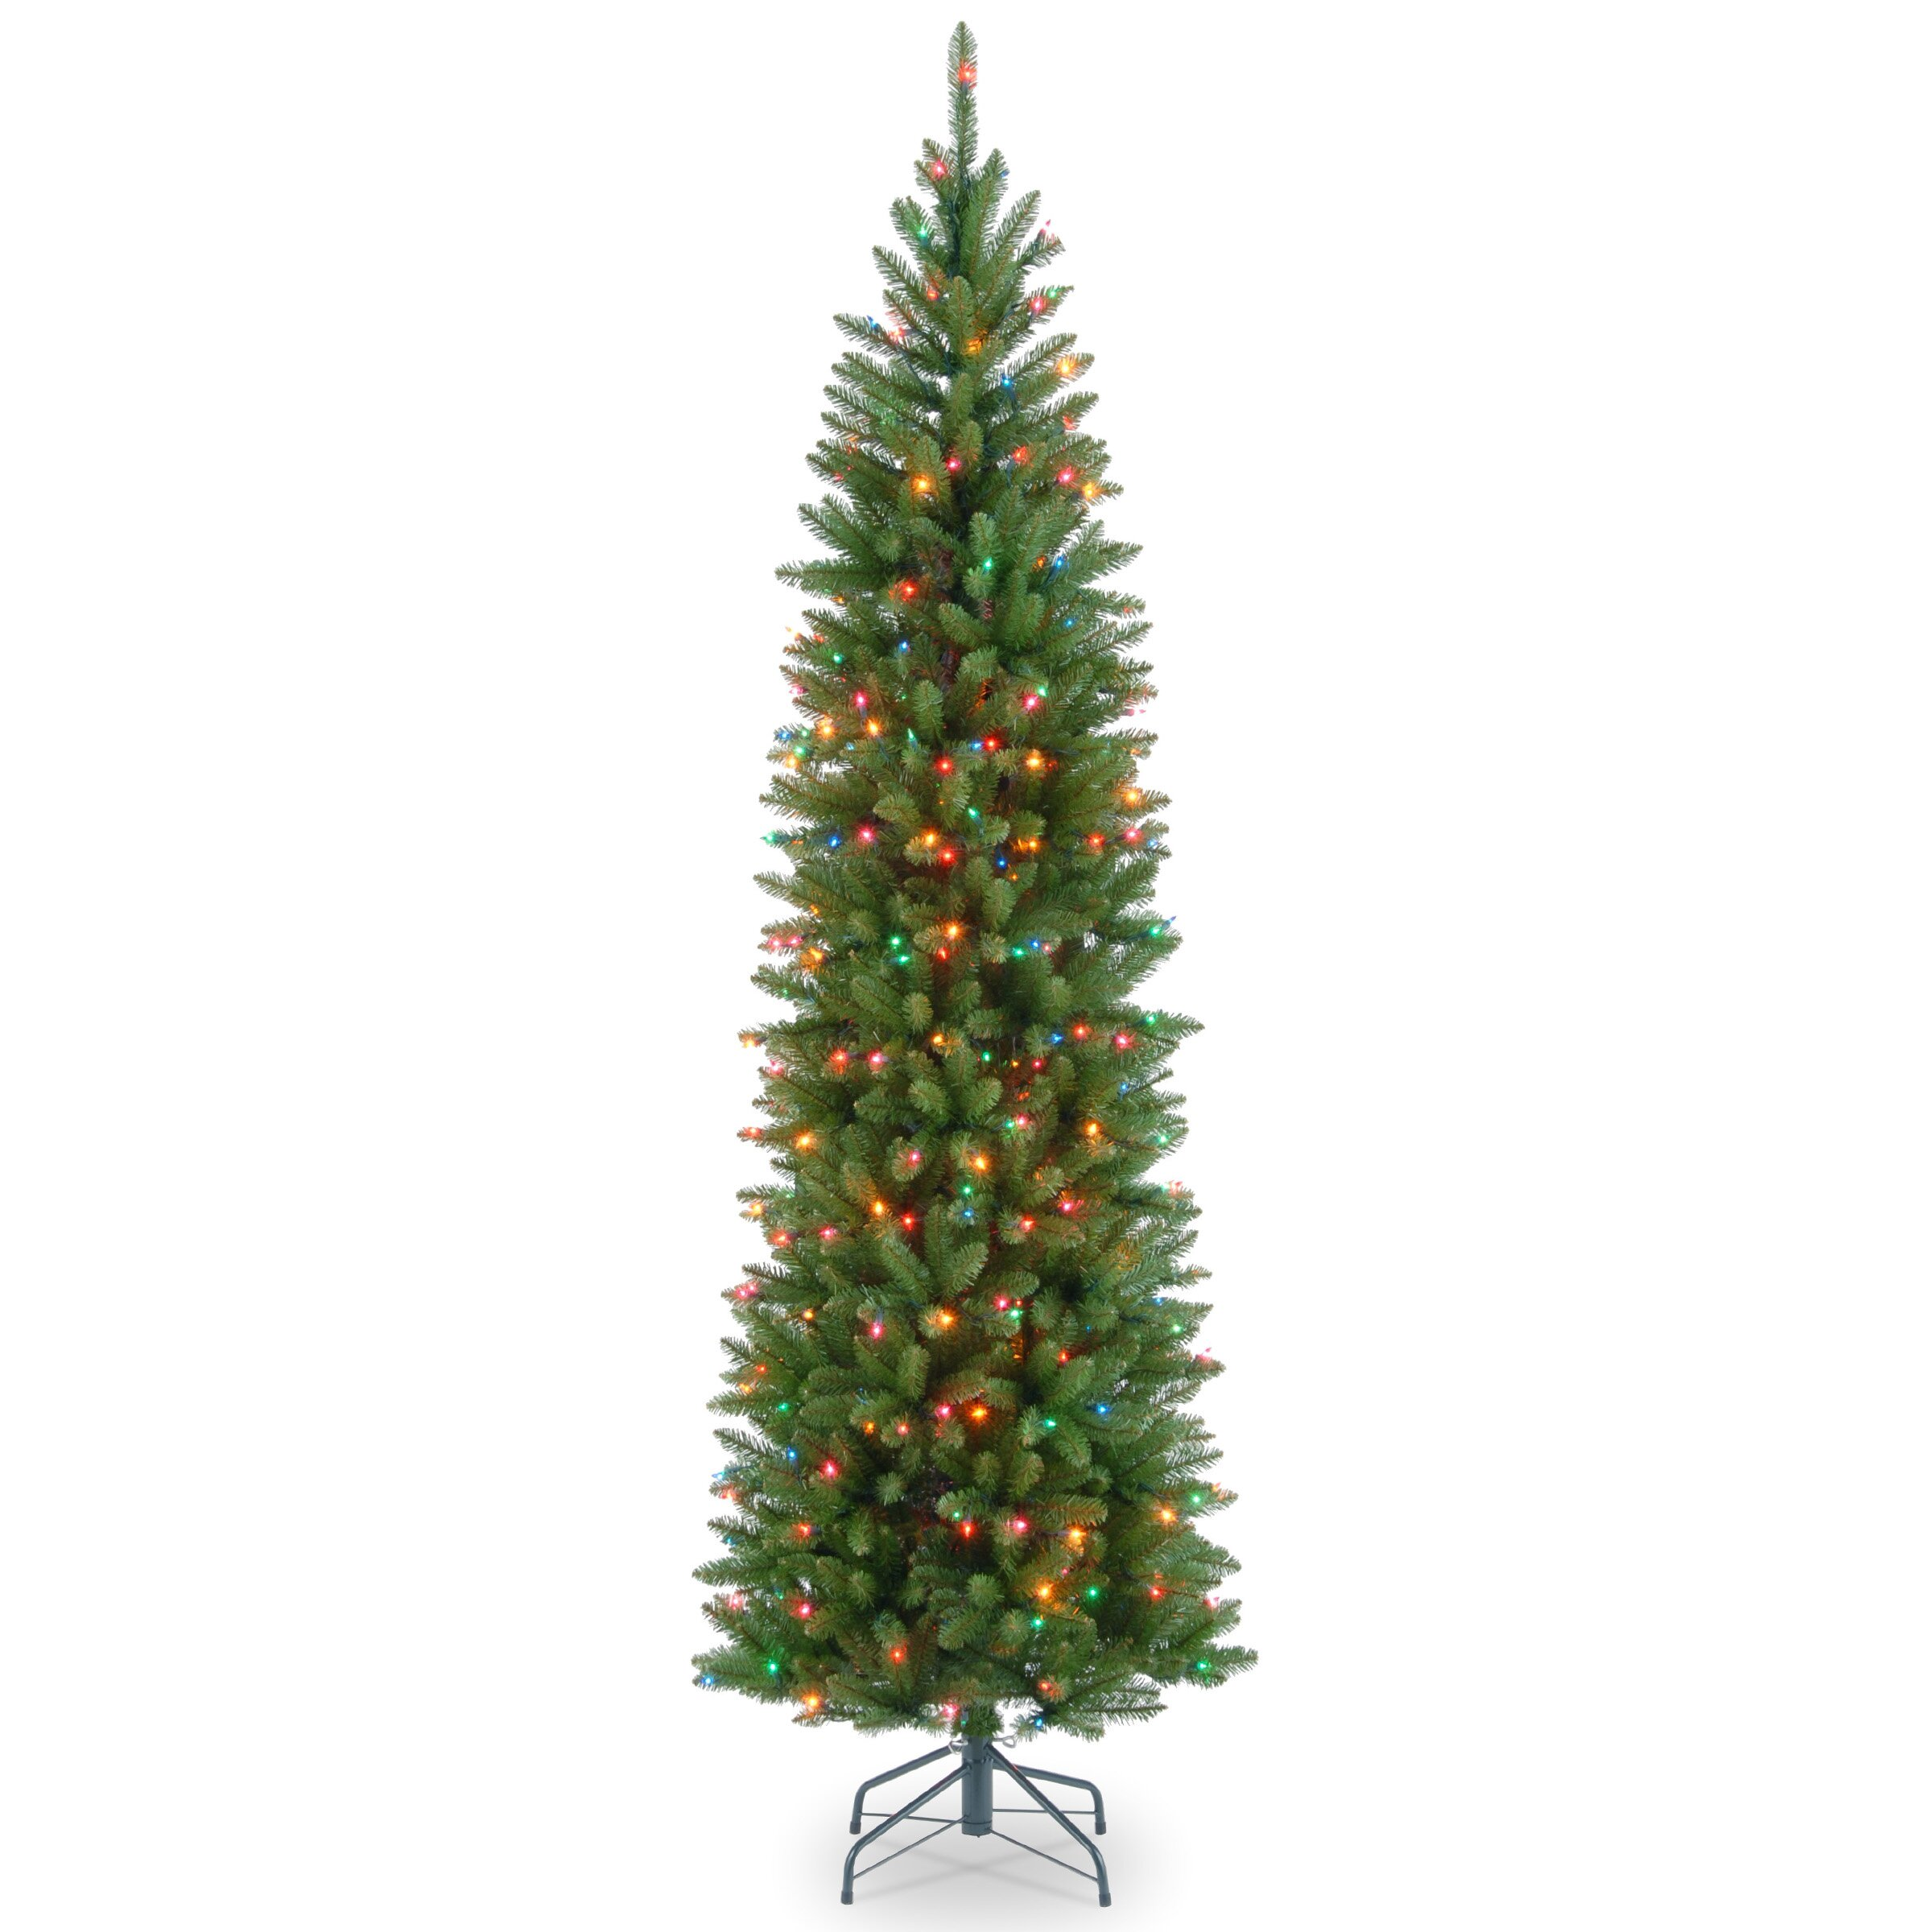 National Tree Co Kingswood Fir 7 5 Green Artificial Tree With Colored Lights